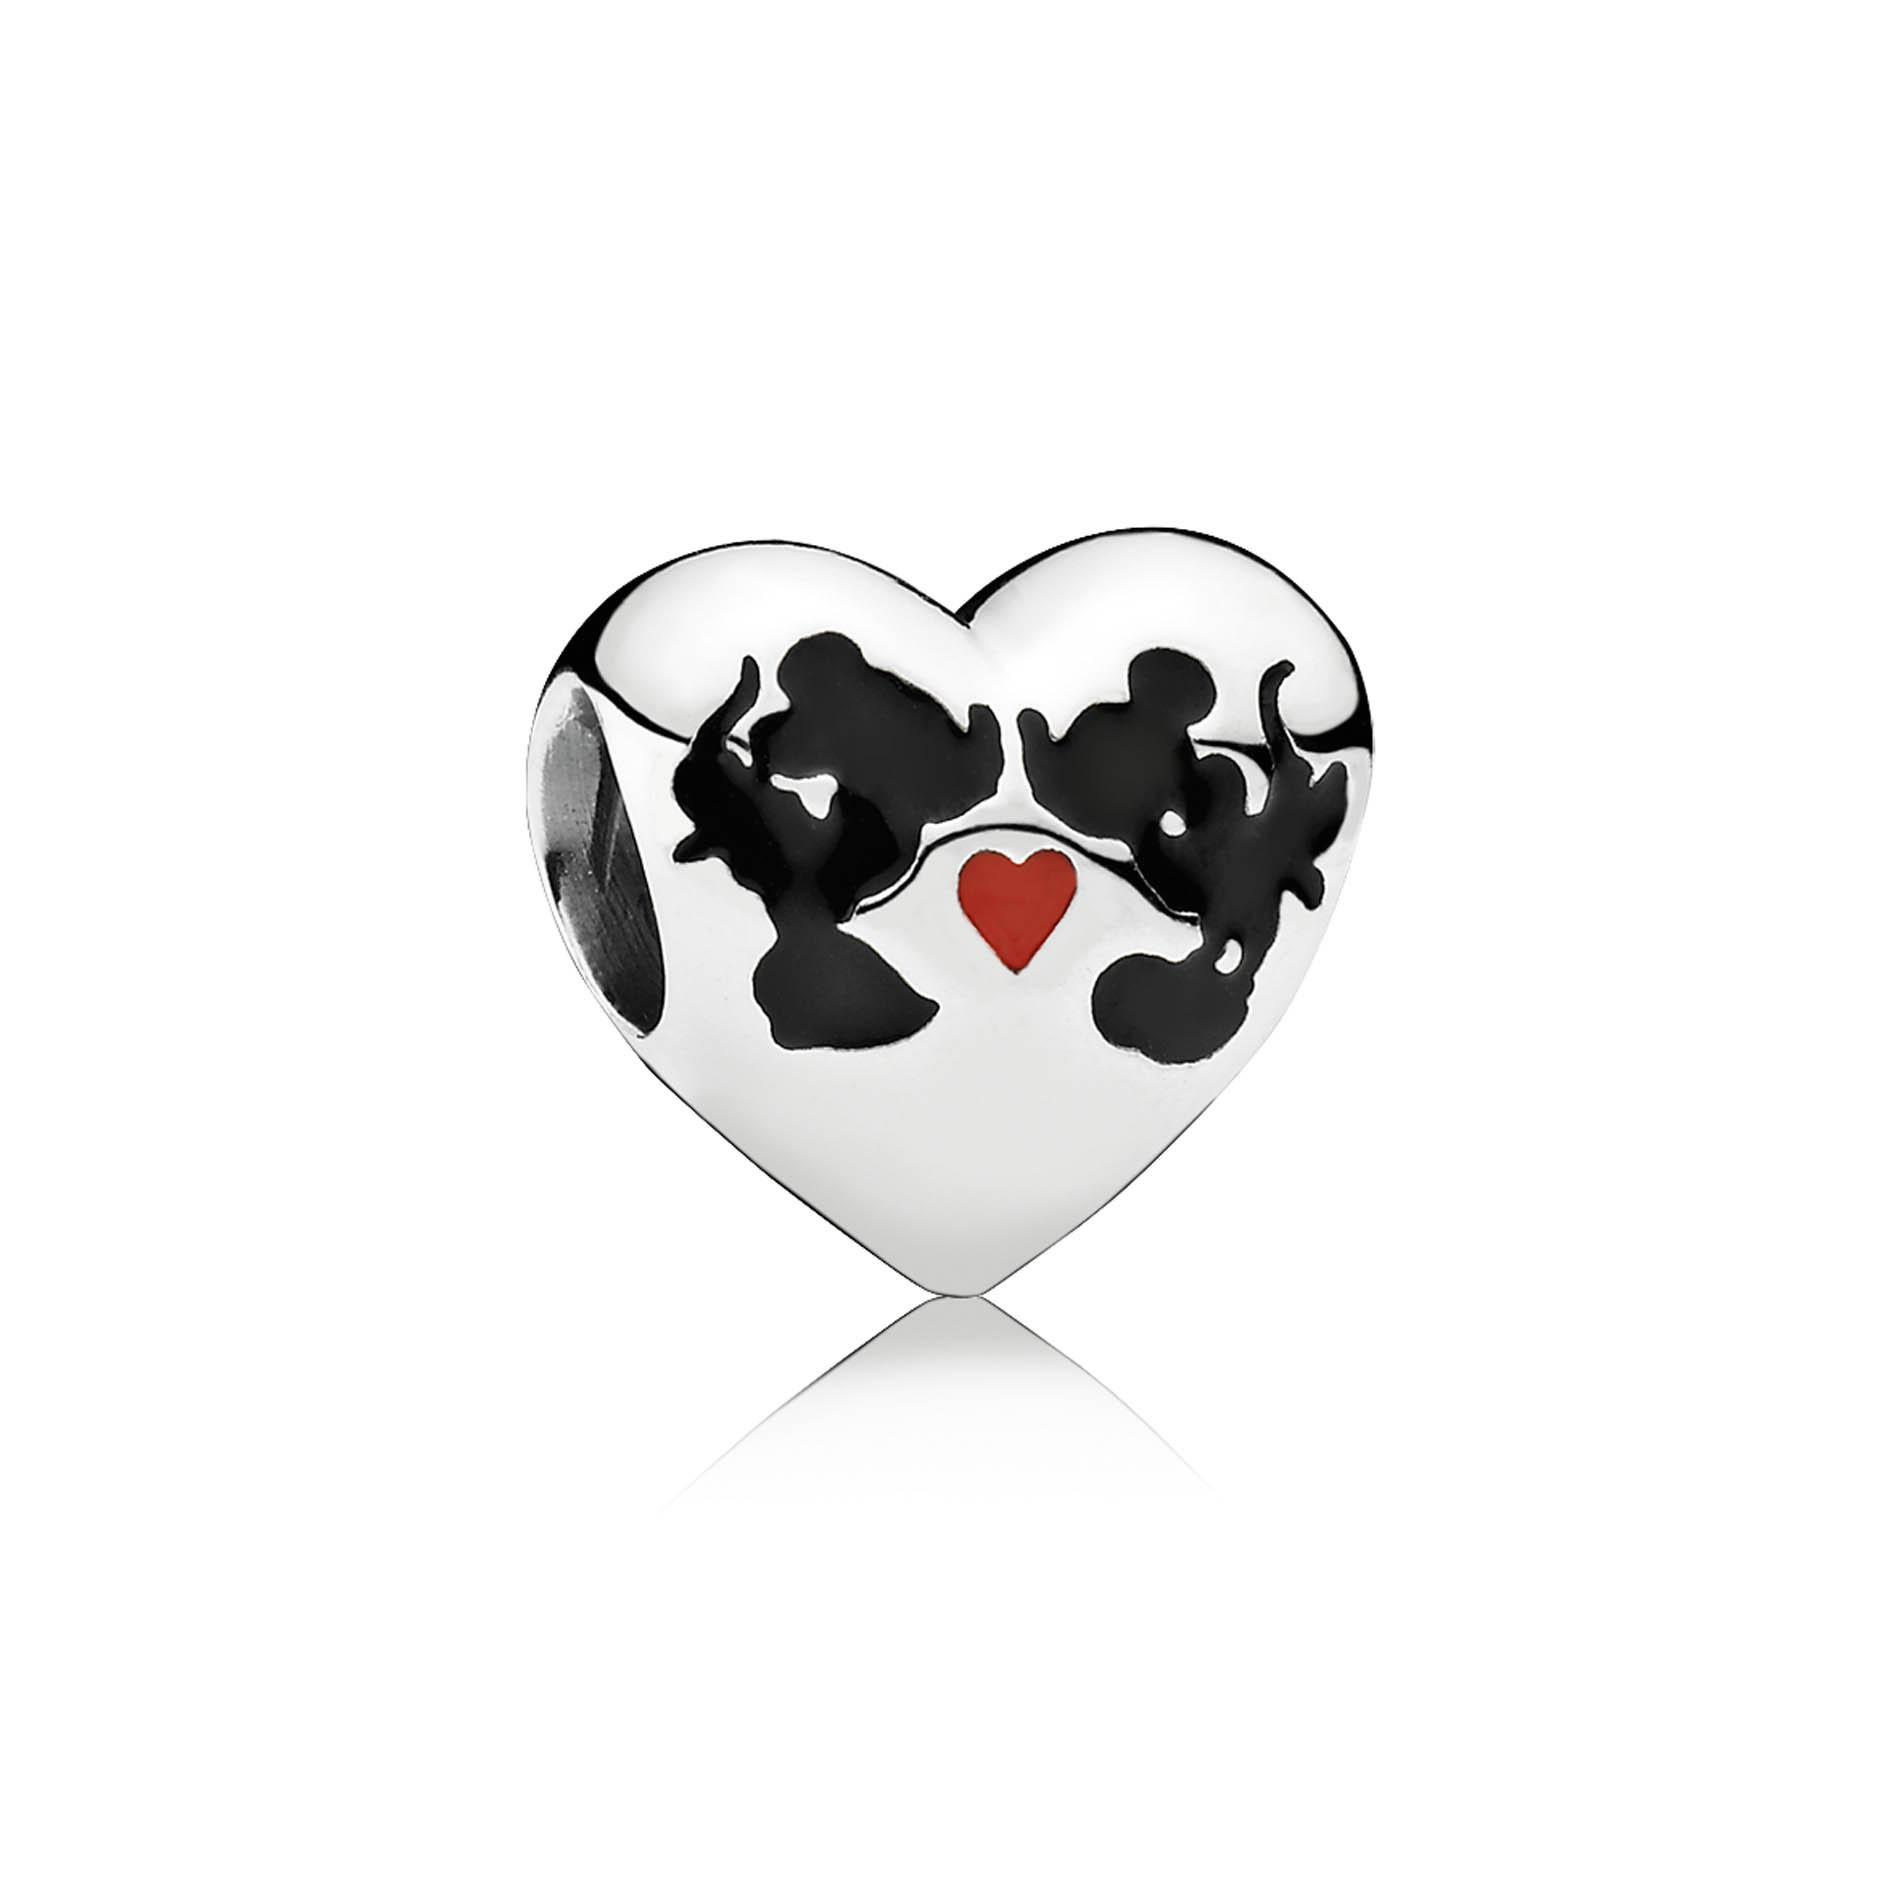 PANDORA's Minnie & Mickey Kiss charm. Disney's favorite mouse couple is celebrated on a sterling silver Minnie & Mickey Kiss heart-shaped charm featuring red and black enamel designs.